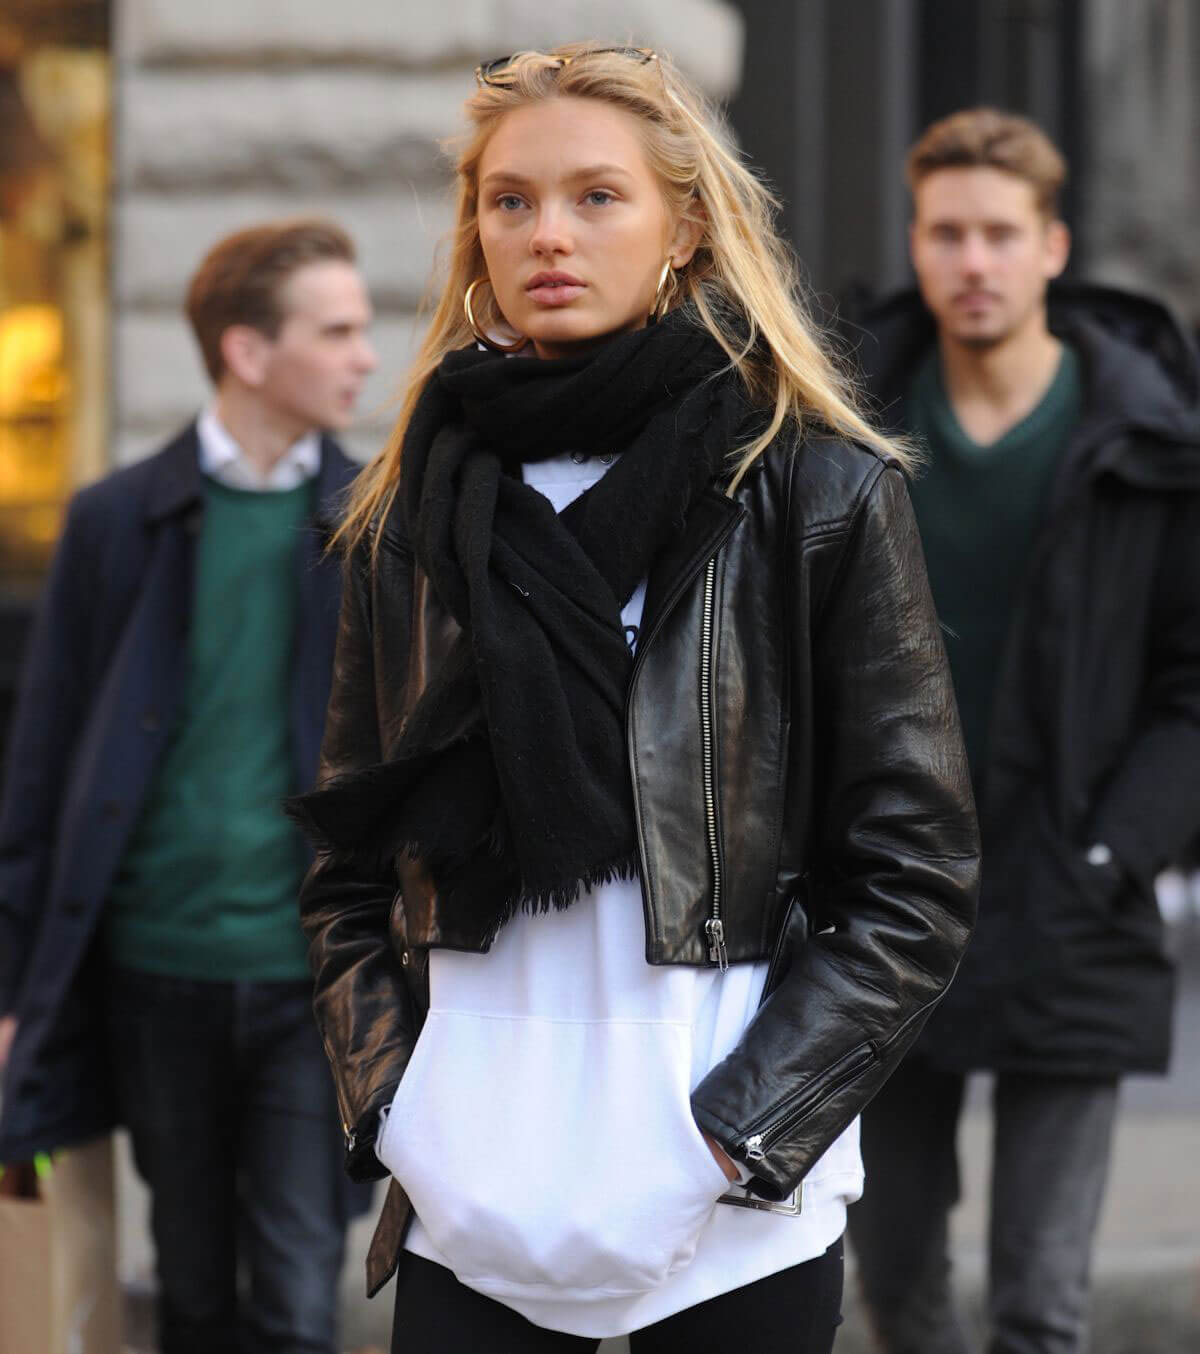 Romee Strijd wears Black Leather Jacket & Tights Out and About in New York